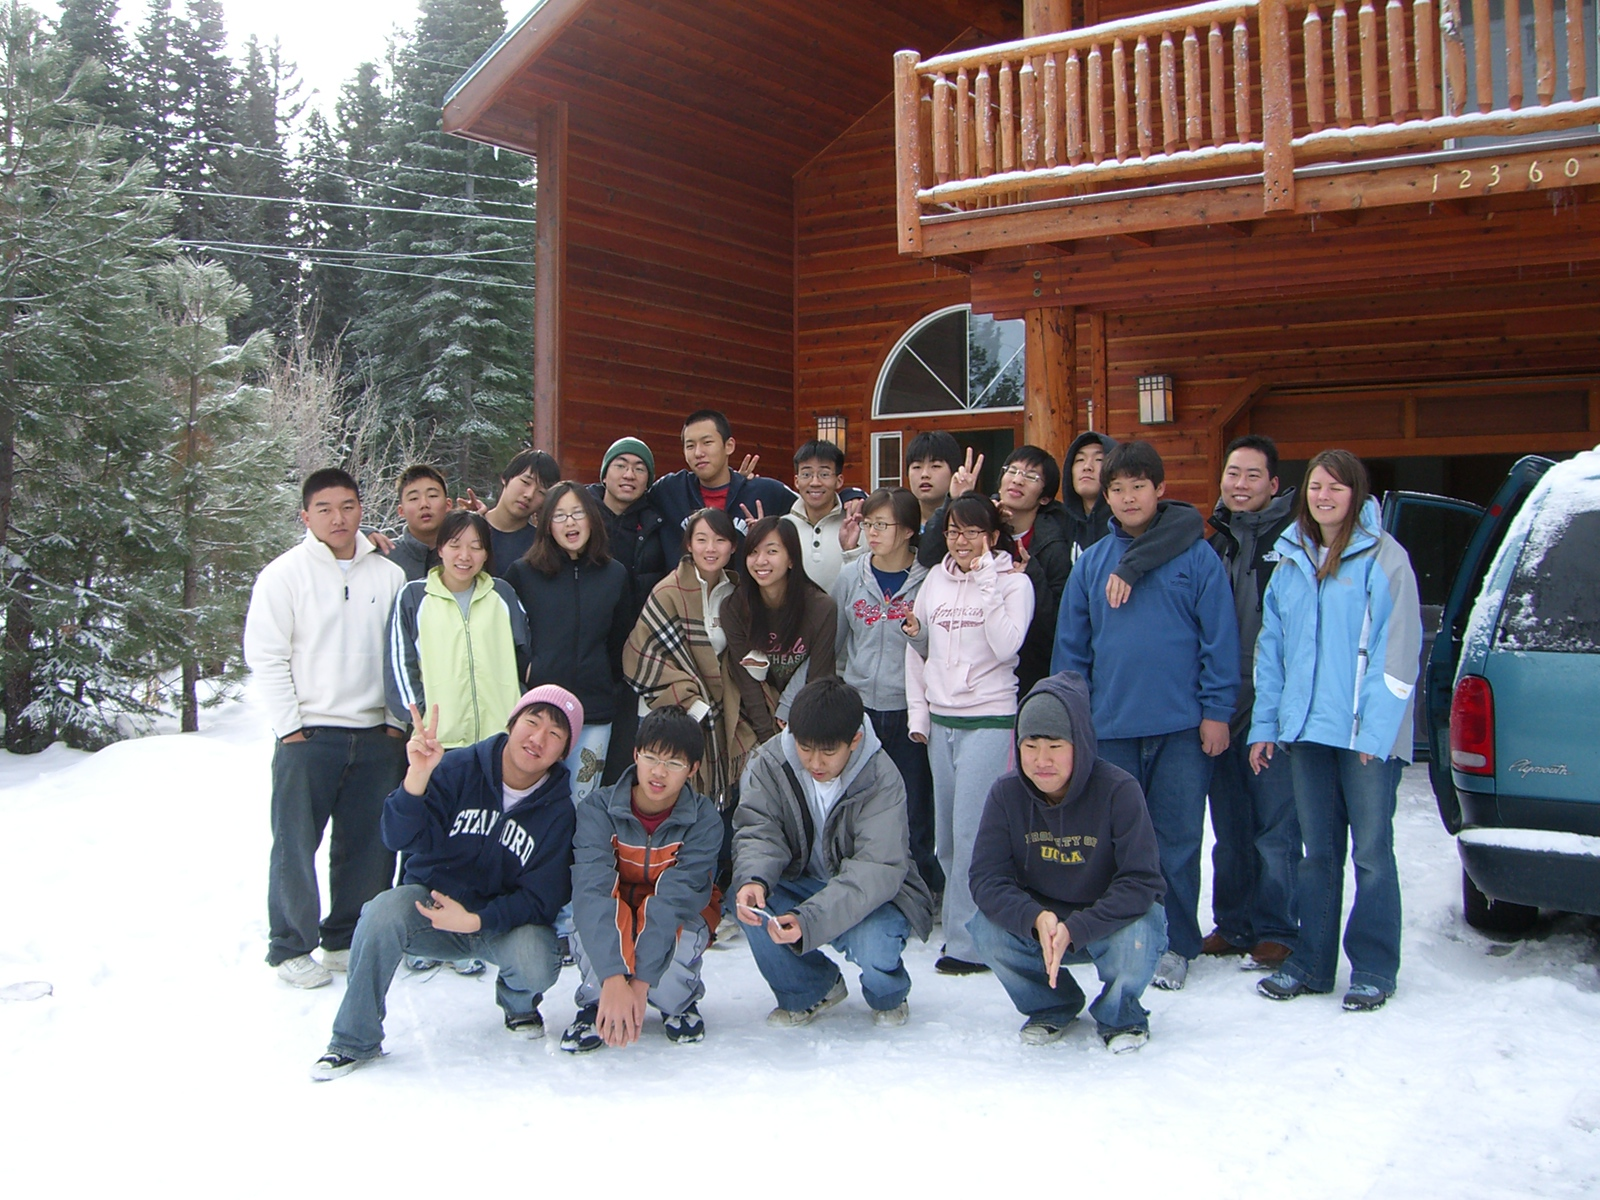 2005 12 29 Thu - End of retreat group pic 4